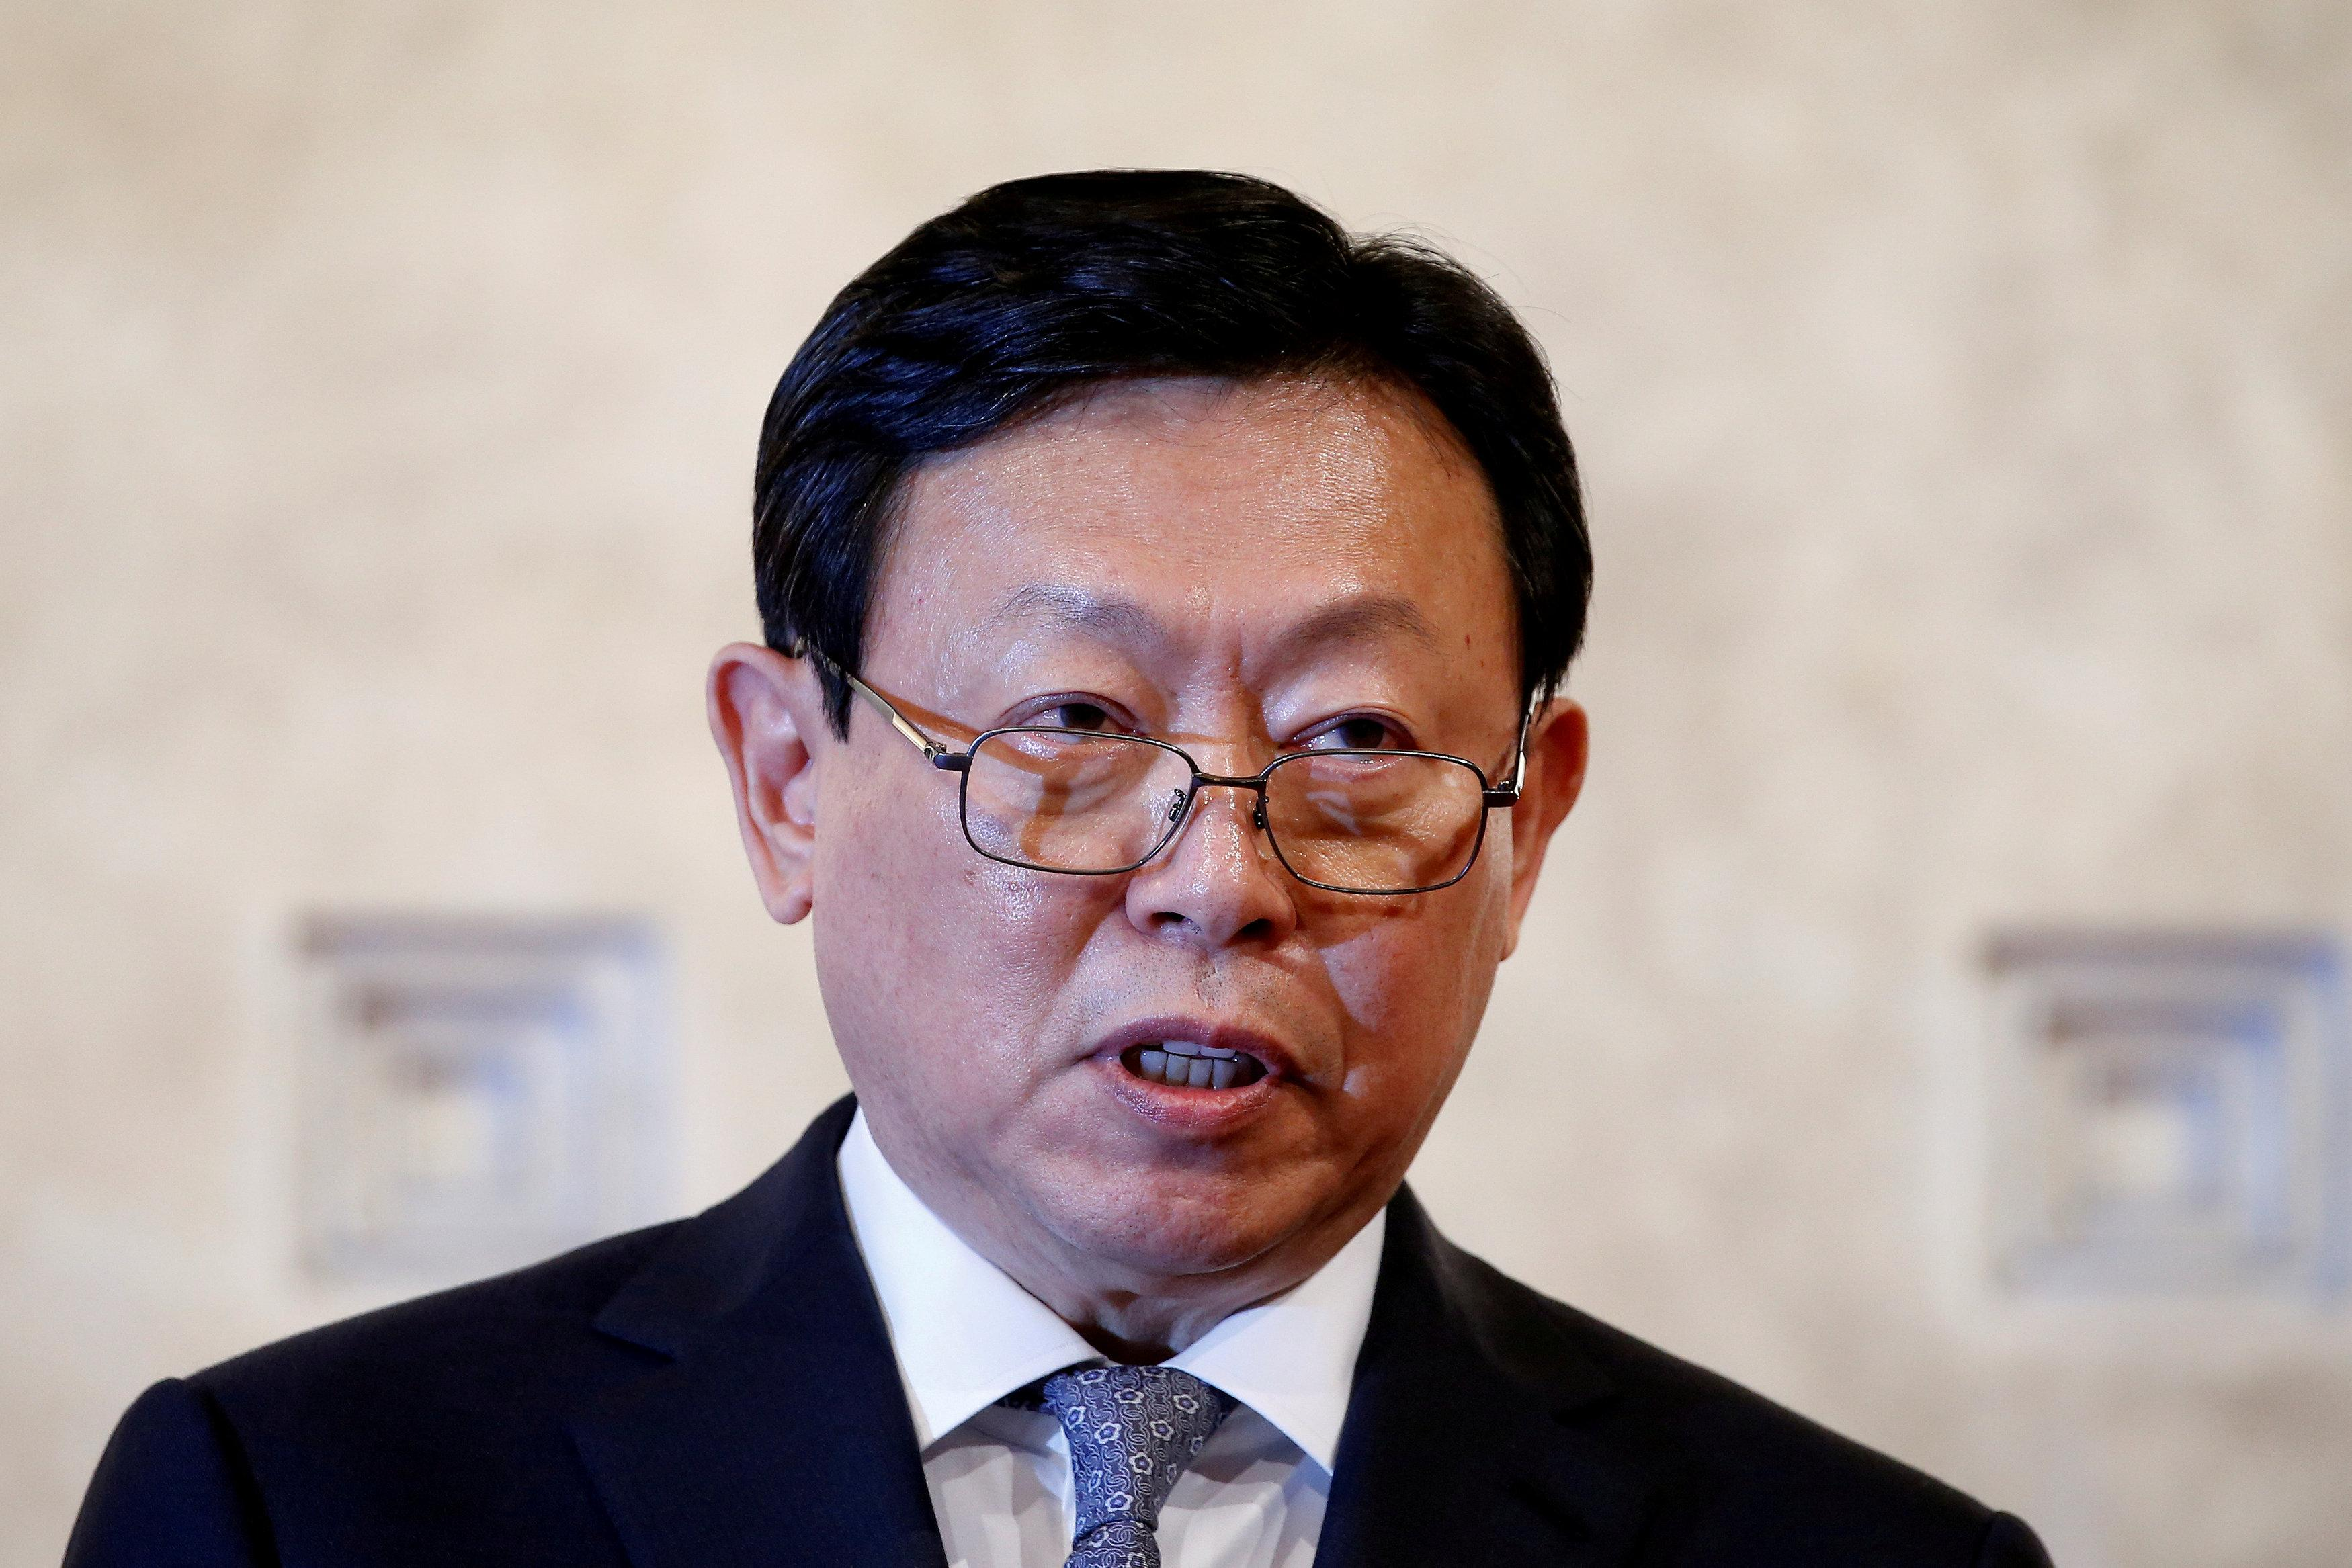 Lotte Group chairman Shin Dong-bin speaks during a news conference in Seoul, South Korea, October 25, 2016. Kim Hong-Ji